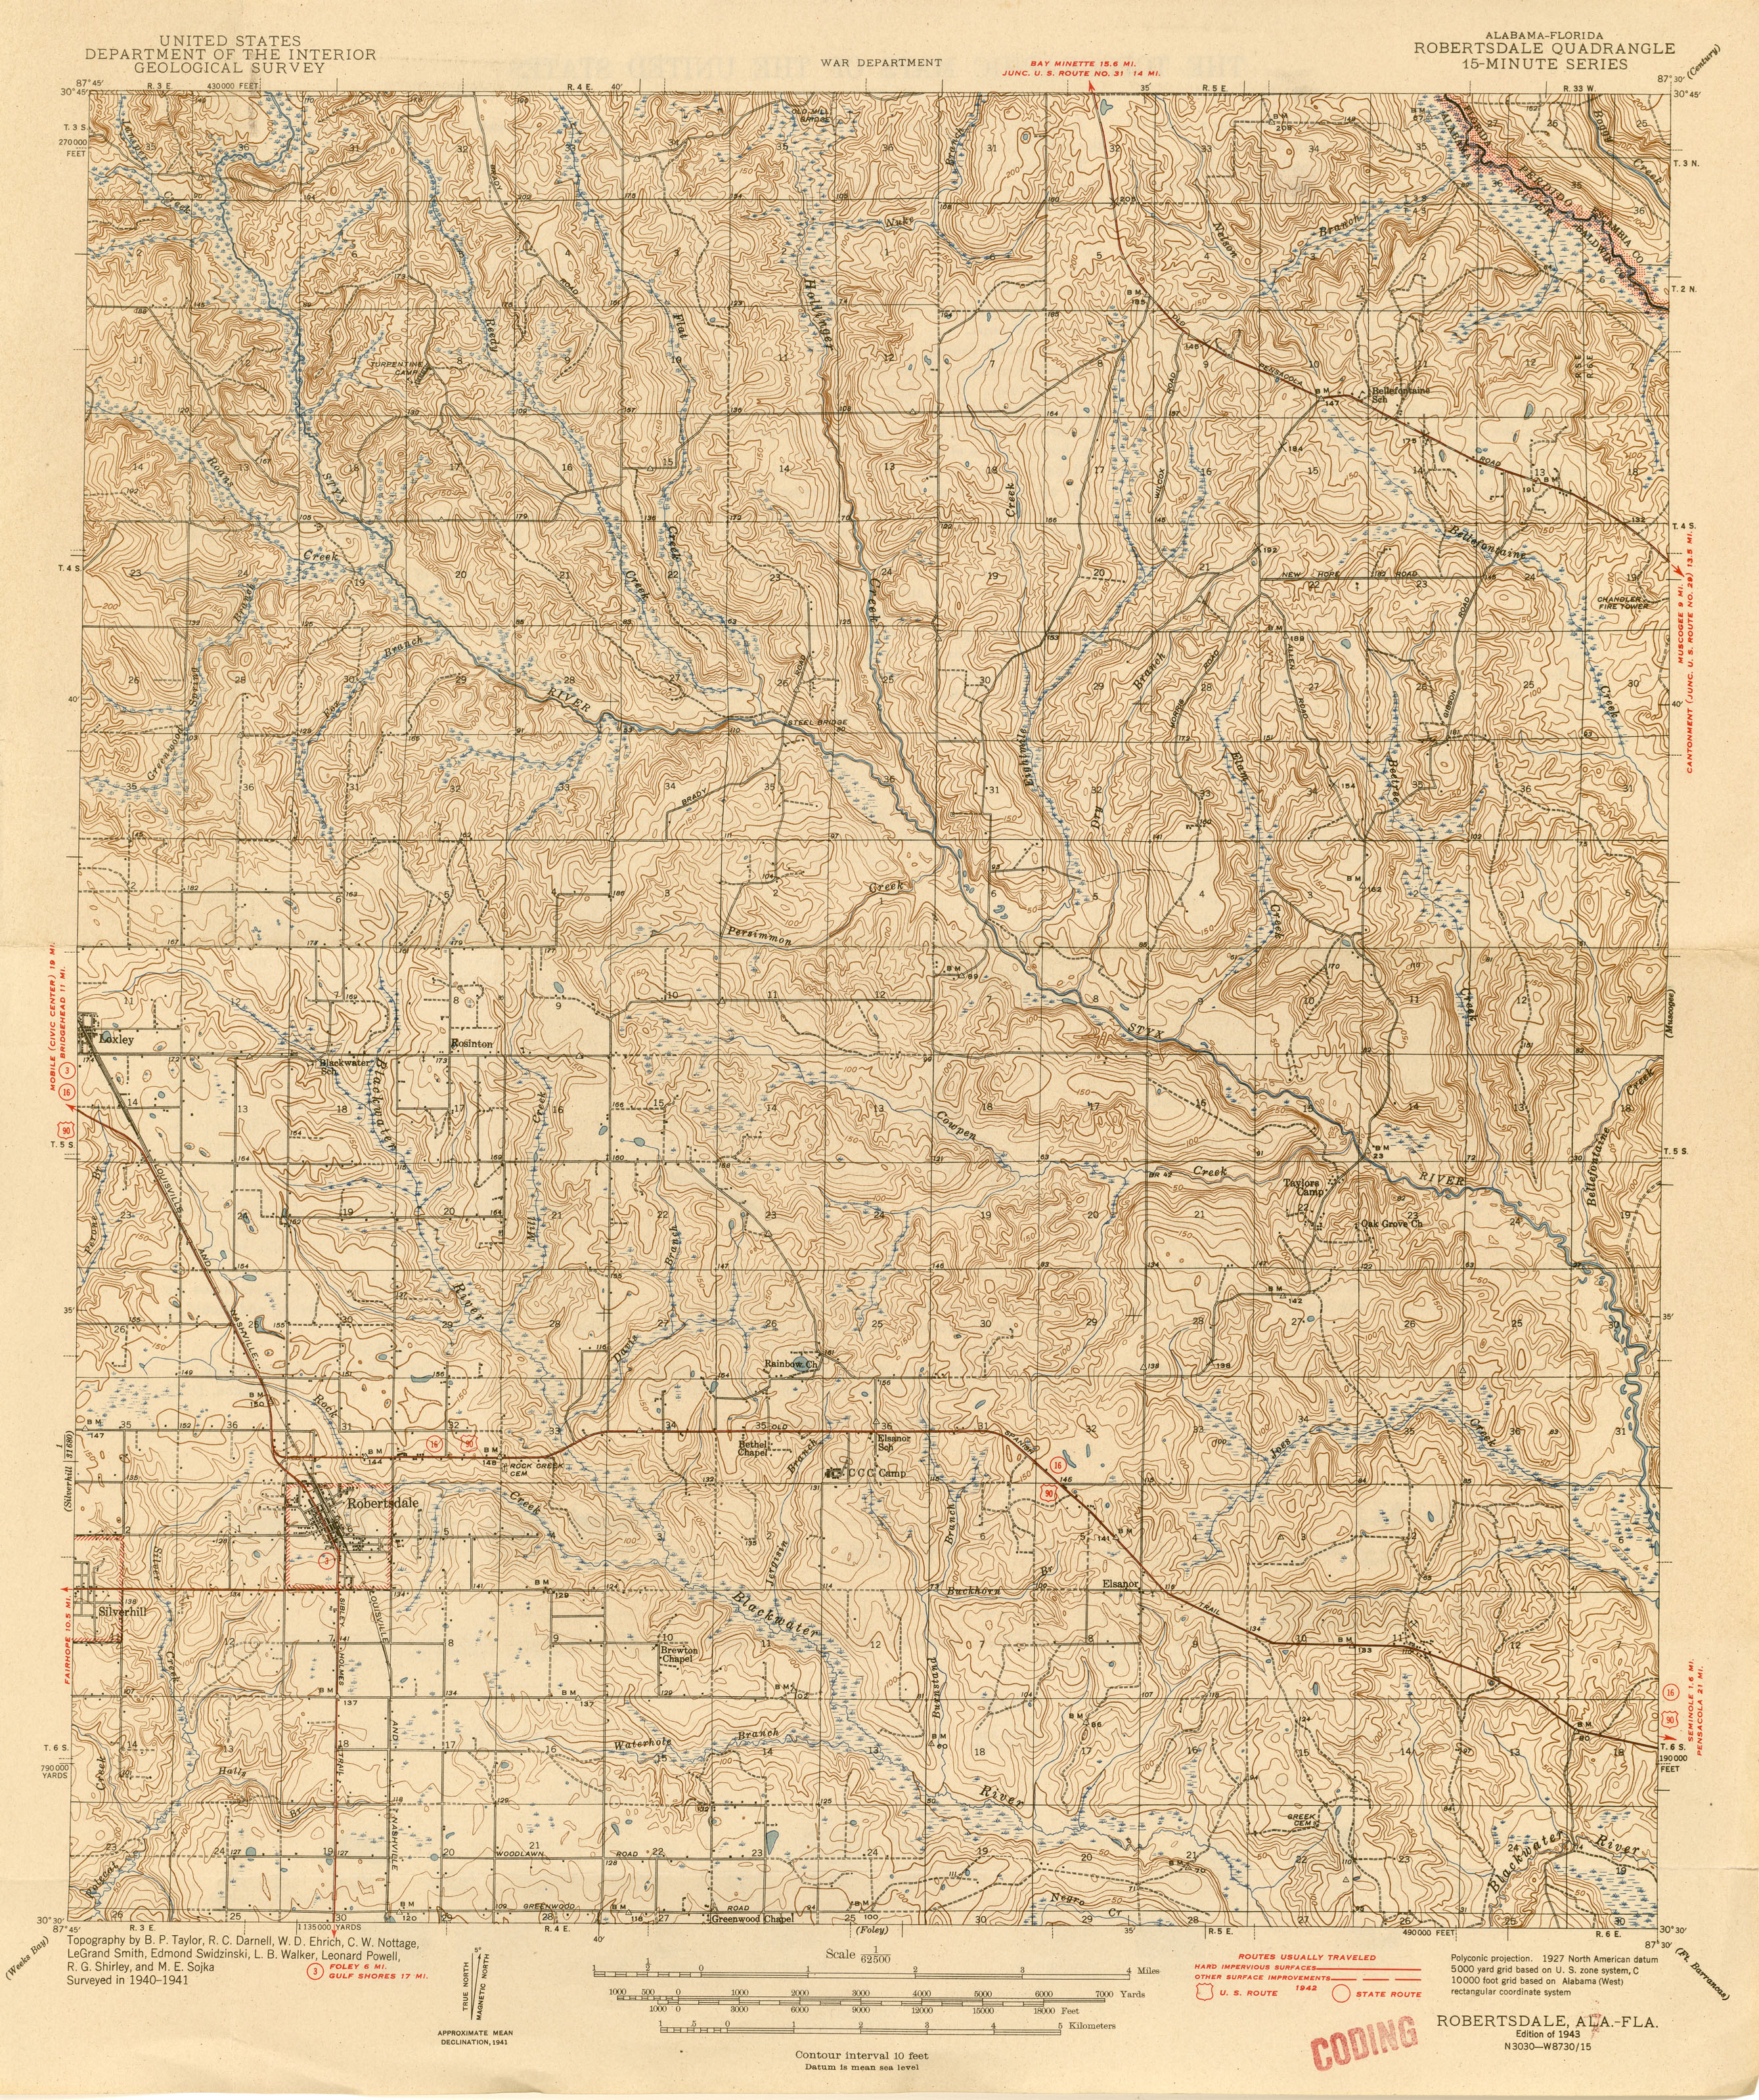 Florida Historical Topographic Maps  Perrycastaeda Map Collection  Florida Historical Topographic Maps Business Ethics Essay Topics also Persuasive Essay Ideas For High School  Custom Writing Service Discount Code